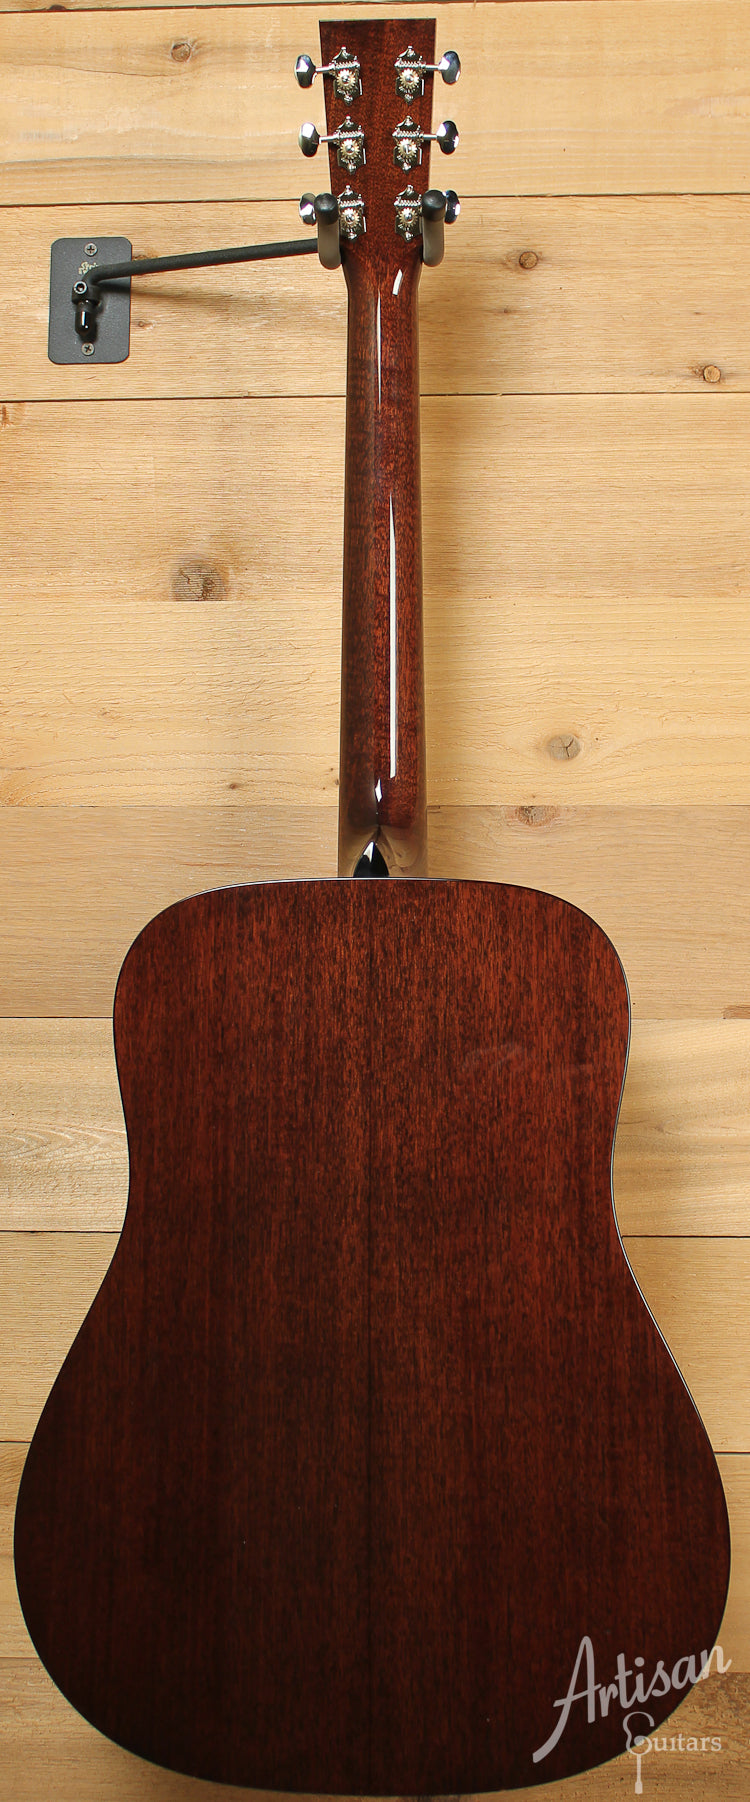 Collings D1 G German Spruce with Mahogany with Adirondack Braces and Dark Vintage Sunburst ID-8543 - Artisan Guitars